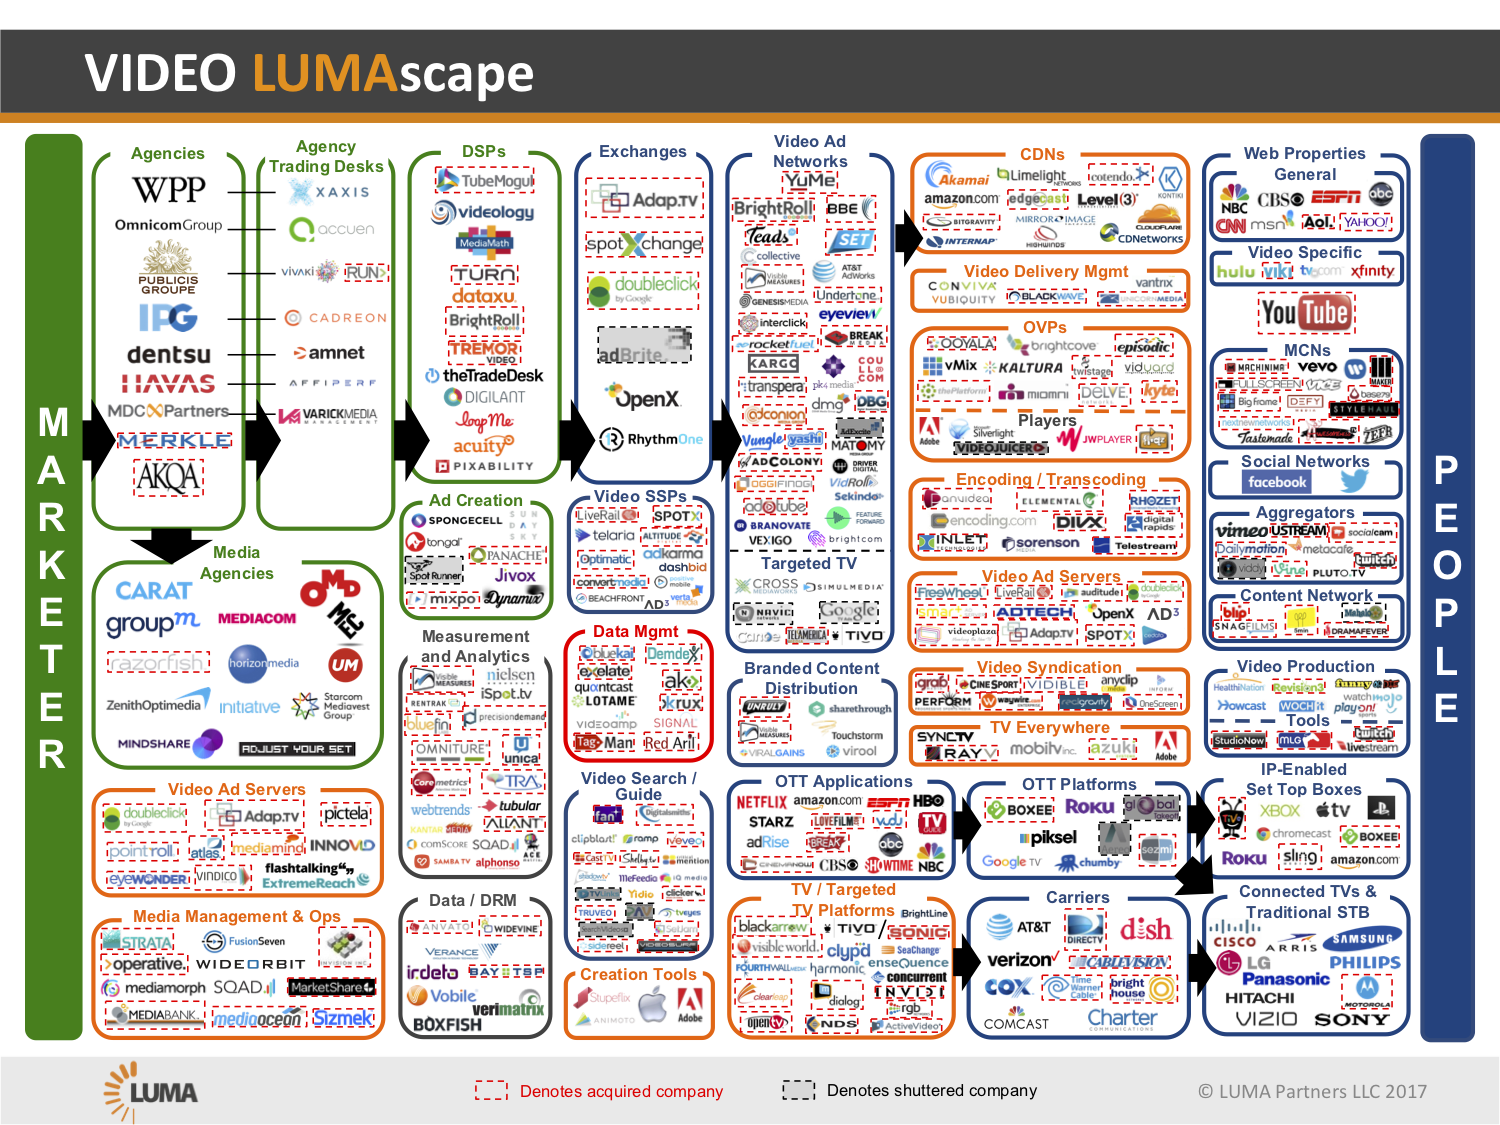 Video Lumascape From Luma Partners Video Ssp Dsp Exchanges Ad Servers And More Marketing Words Display Advertising Mobile Marketing